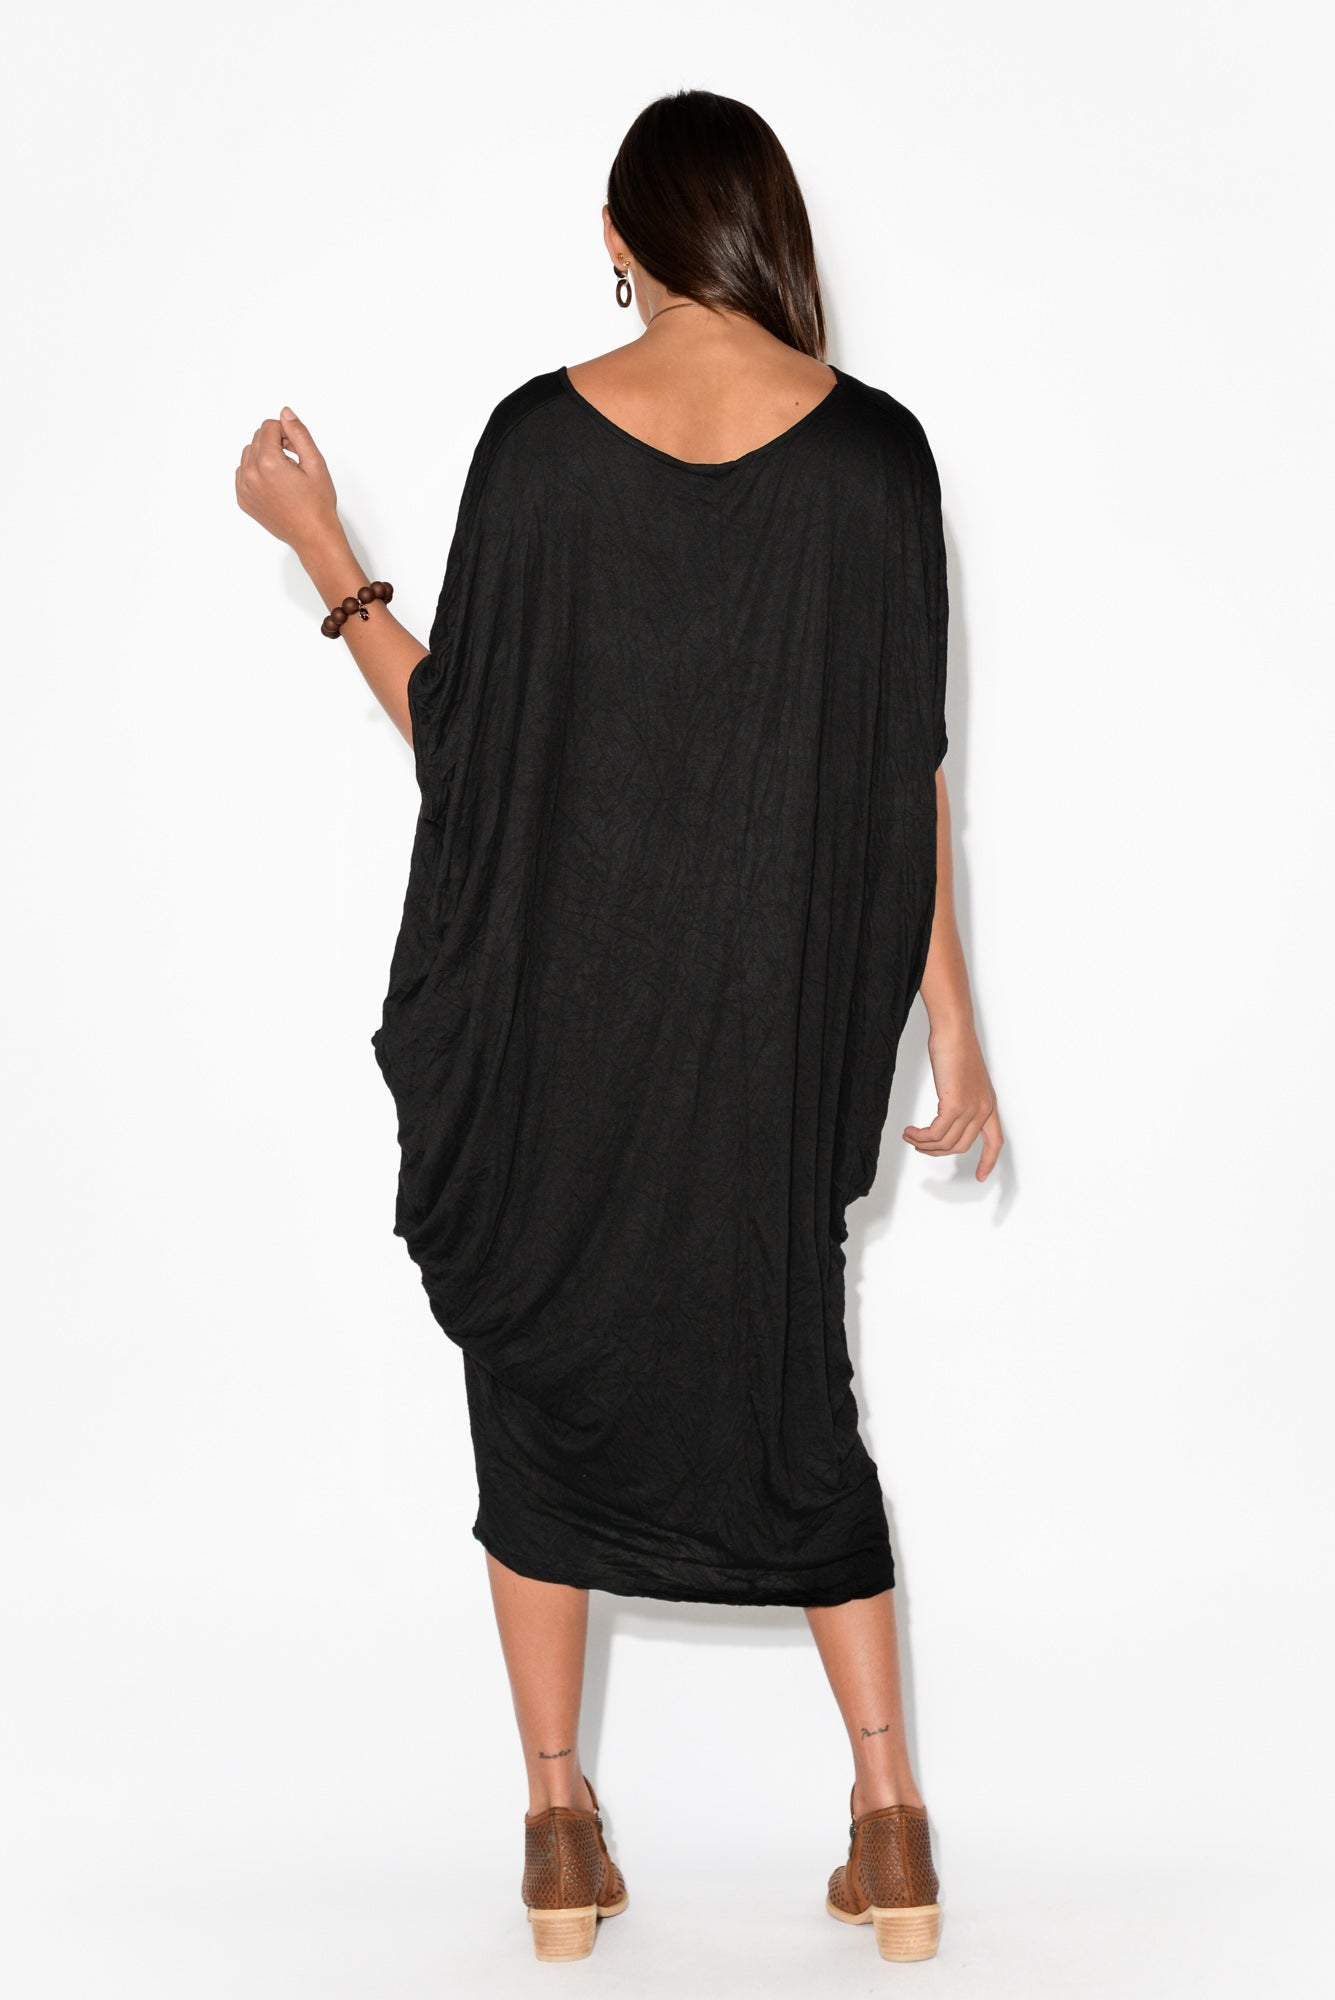 Black Batwing Pocket Cotton Dress